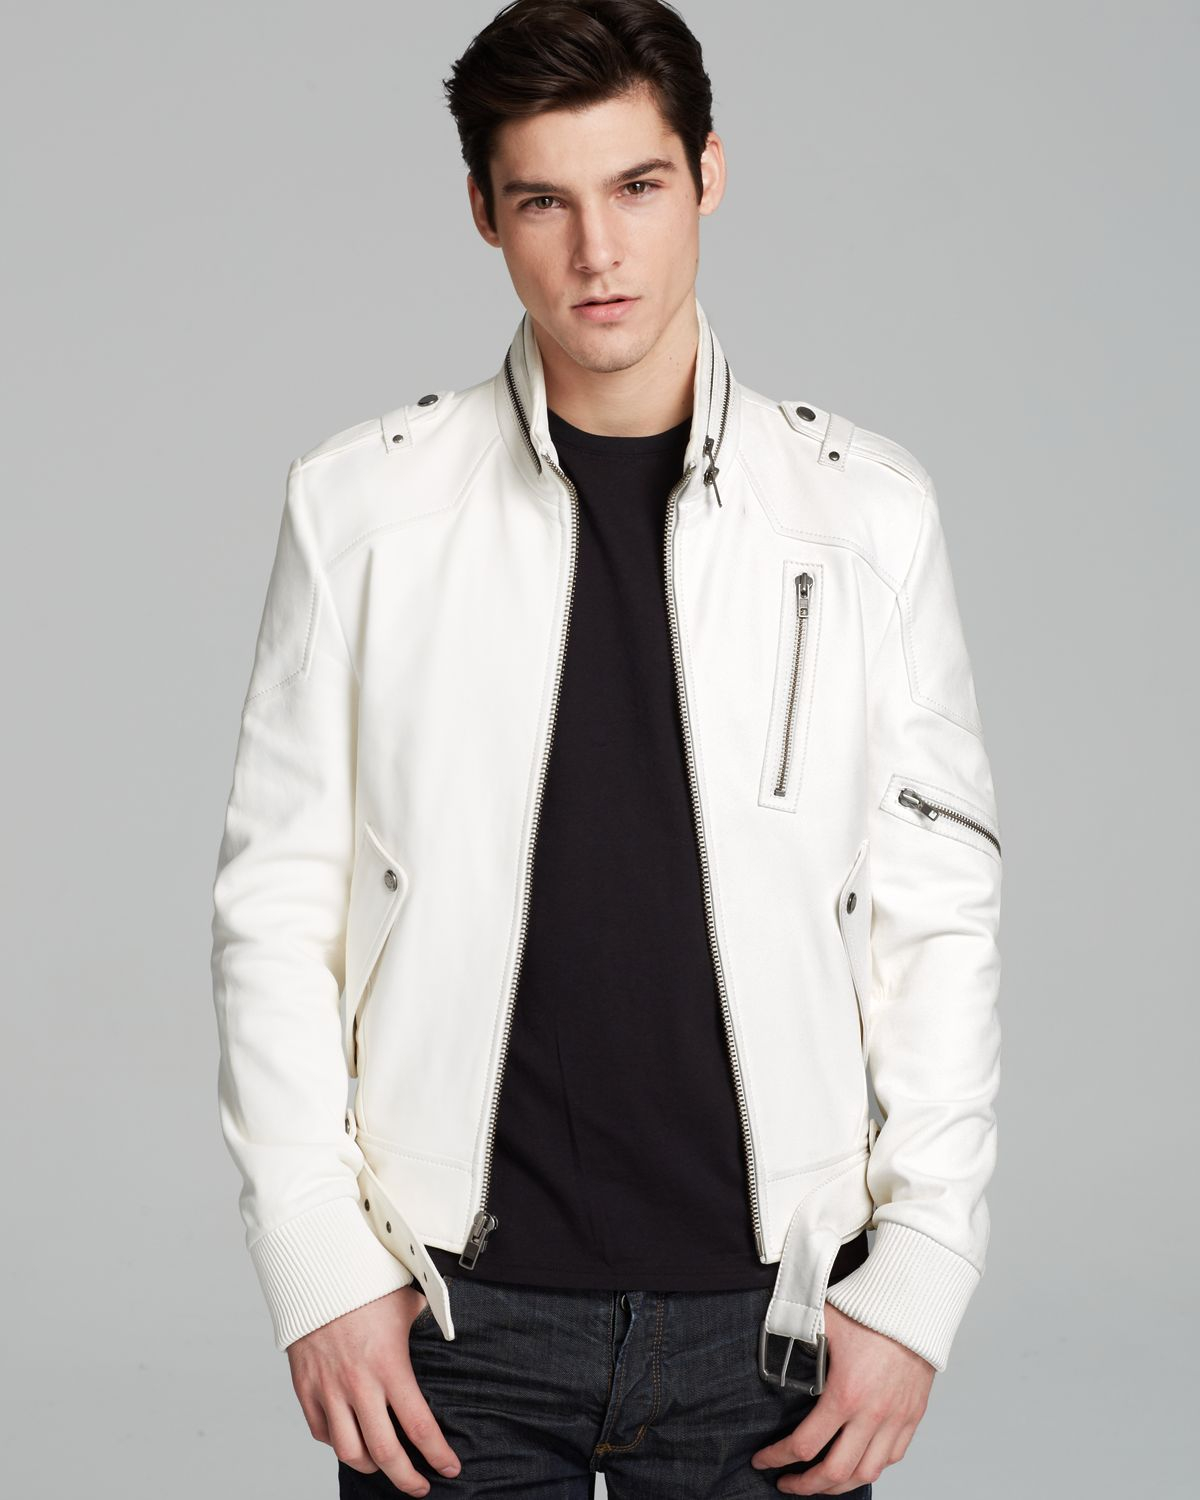 White Leather Jacket: How to Use